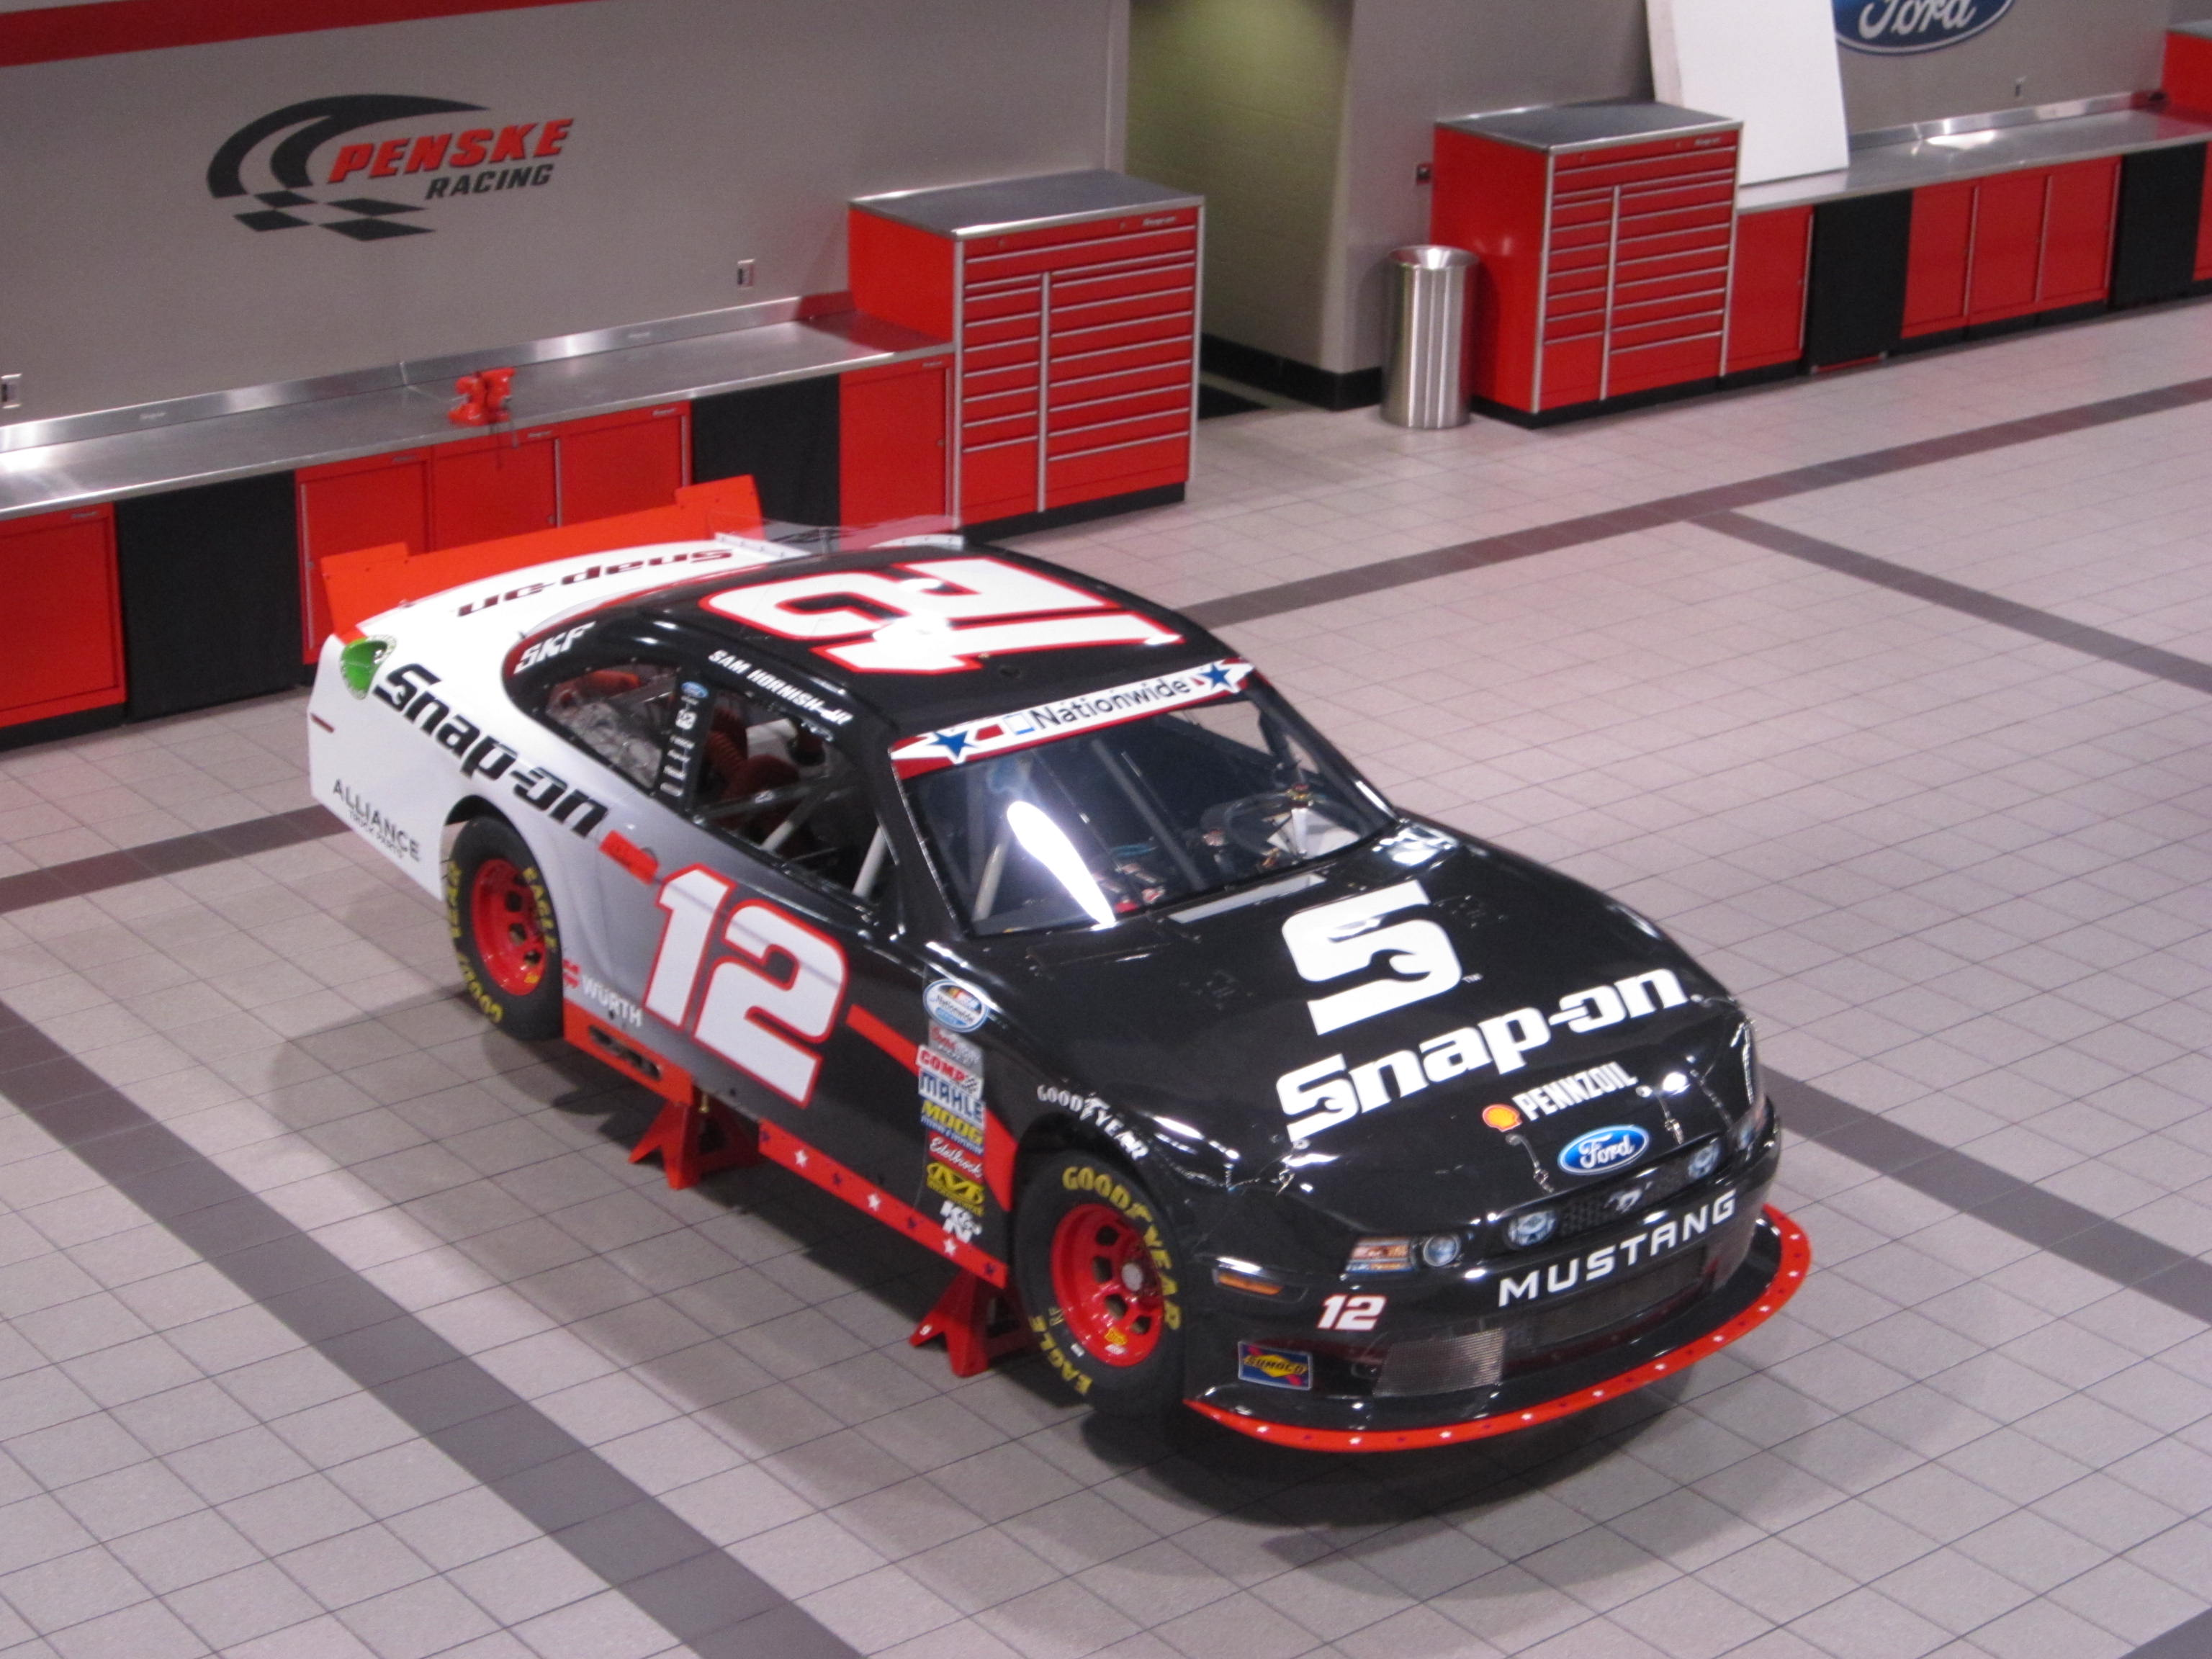 descriptive essay describing a nascar race Free essay: automobile racing automobile racing, one of the most popular  sports in the world, have races run with wide coverage on television - before.